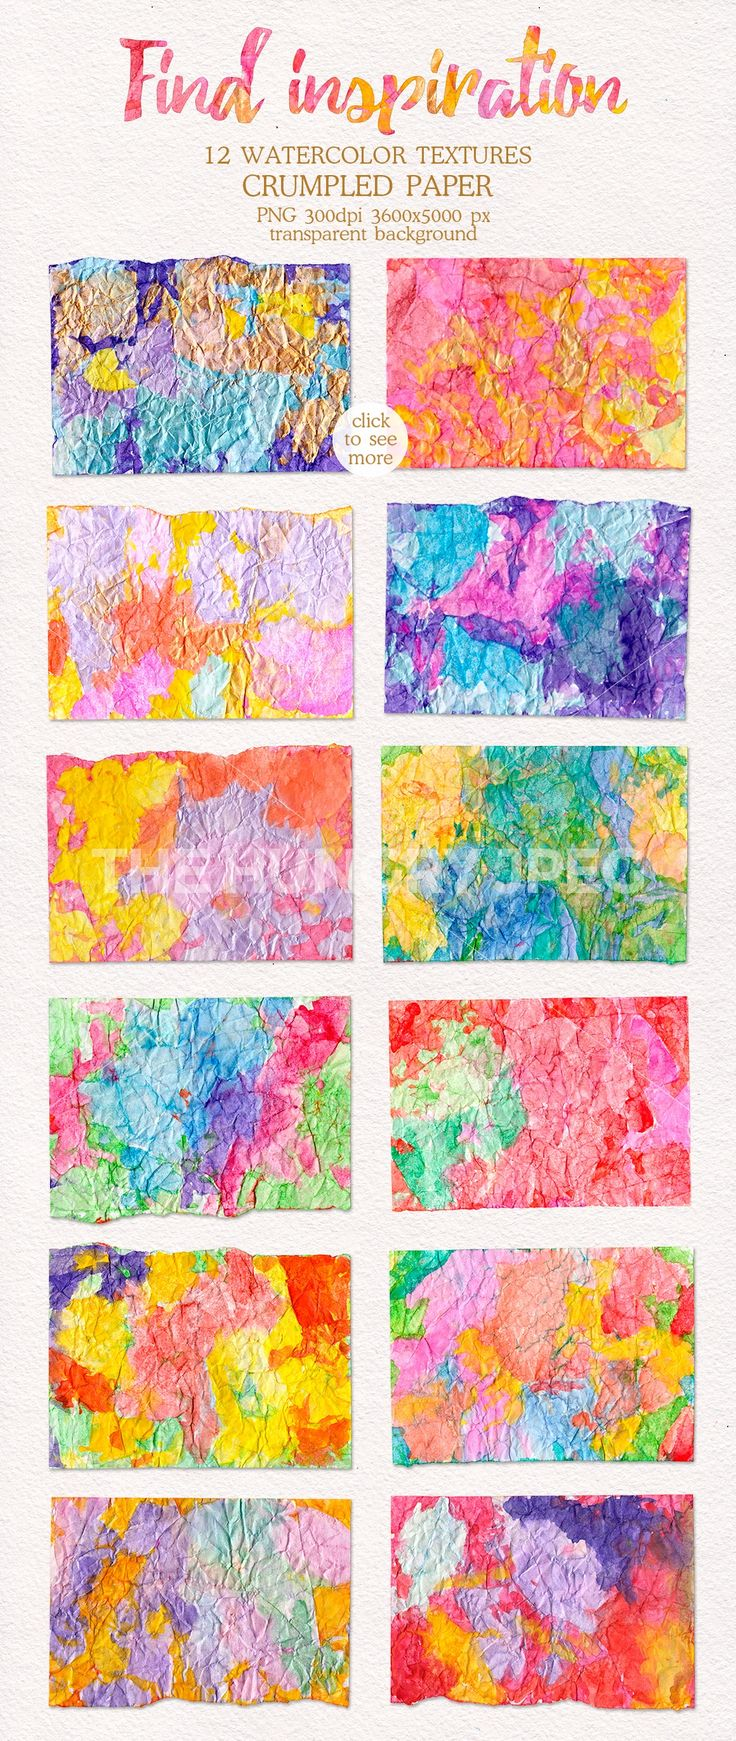 12 Bright rainbow Watercolor hand painted textures on crumpled paper.  This watercolor pack containing watercolor textures that make lovely paper stationery (posters, business cards, postcards, notebooks, invitation) or home decor (pillows, bedclothes, towels, napkins), for weddings, apparel, merchandise designs, scrapbooking, fashion and so much more.